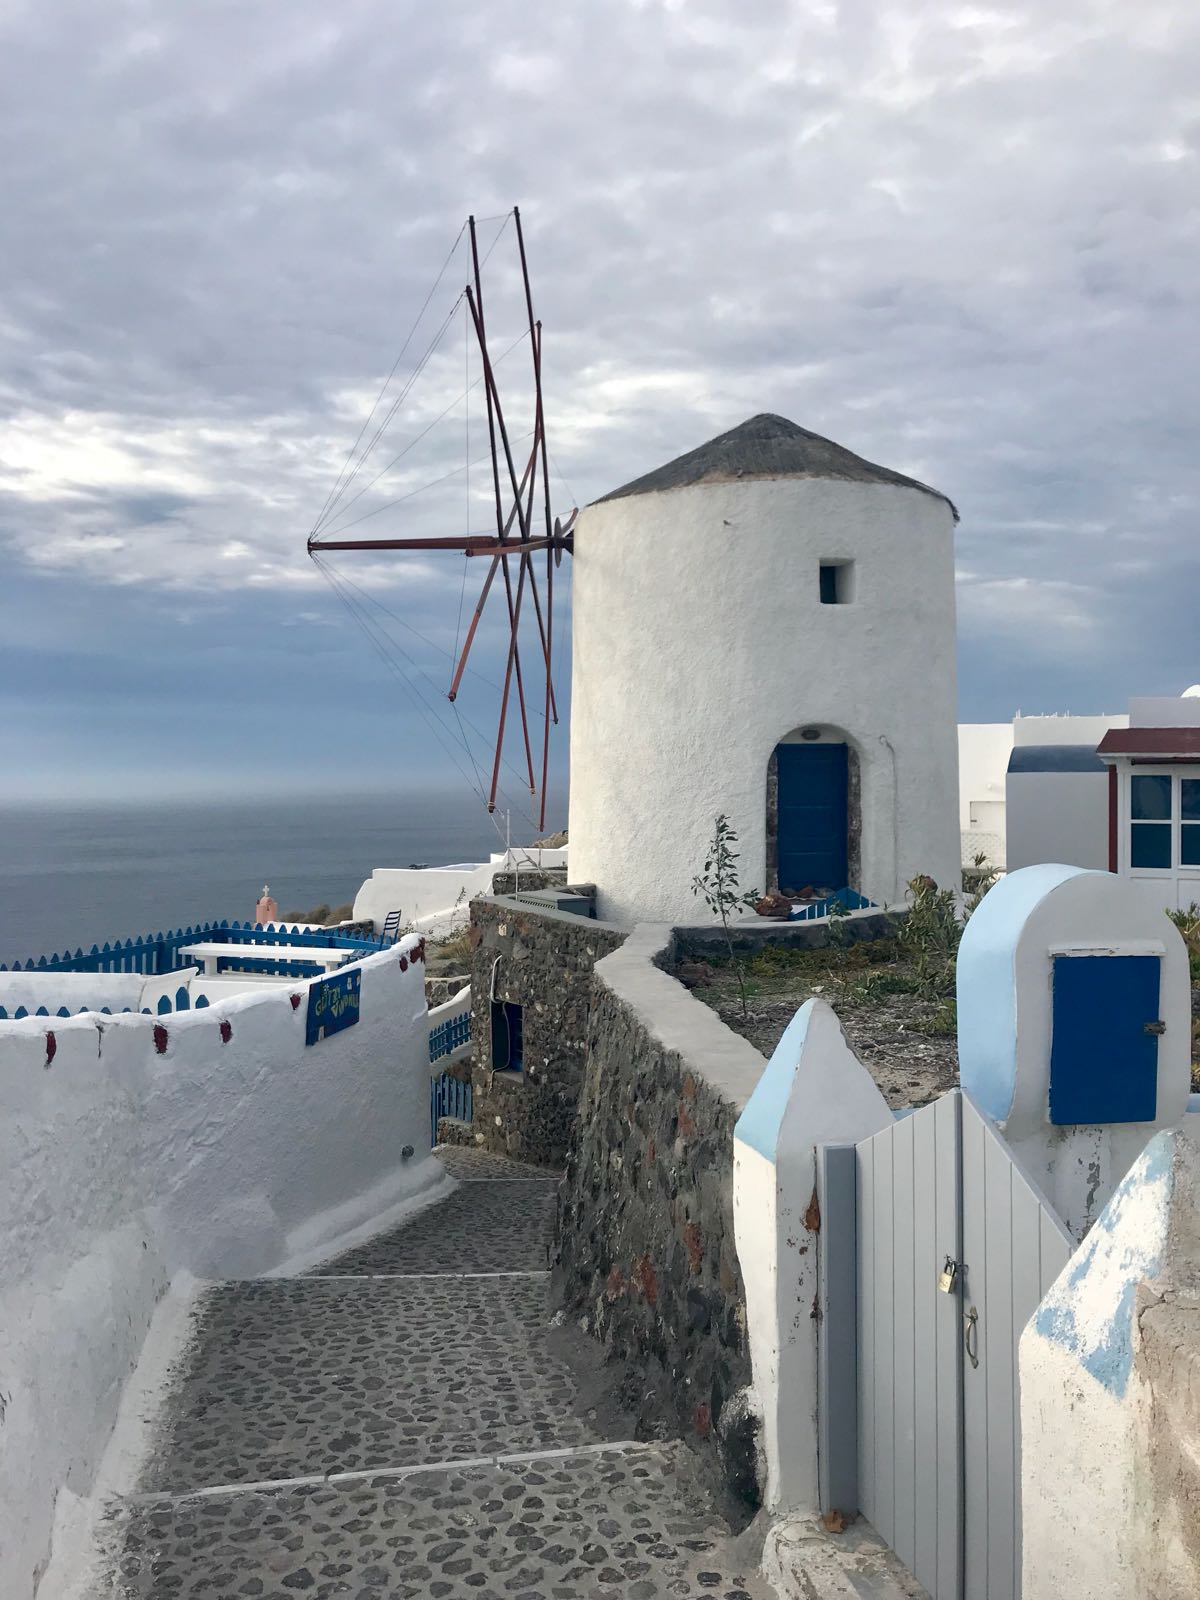 Windmill in Oia nested between houses, on the edge of a path between them